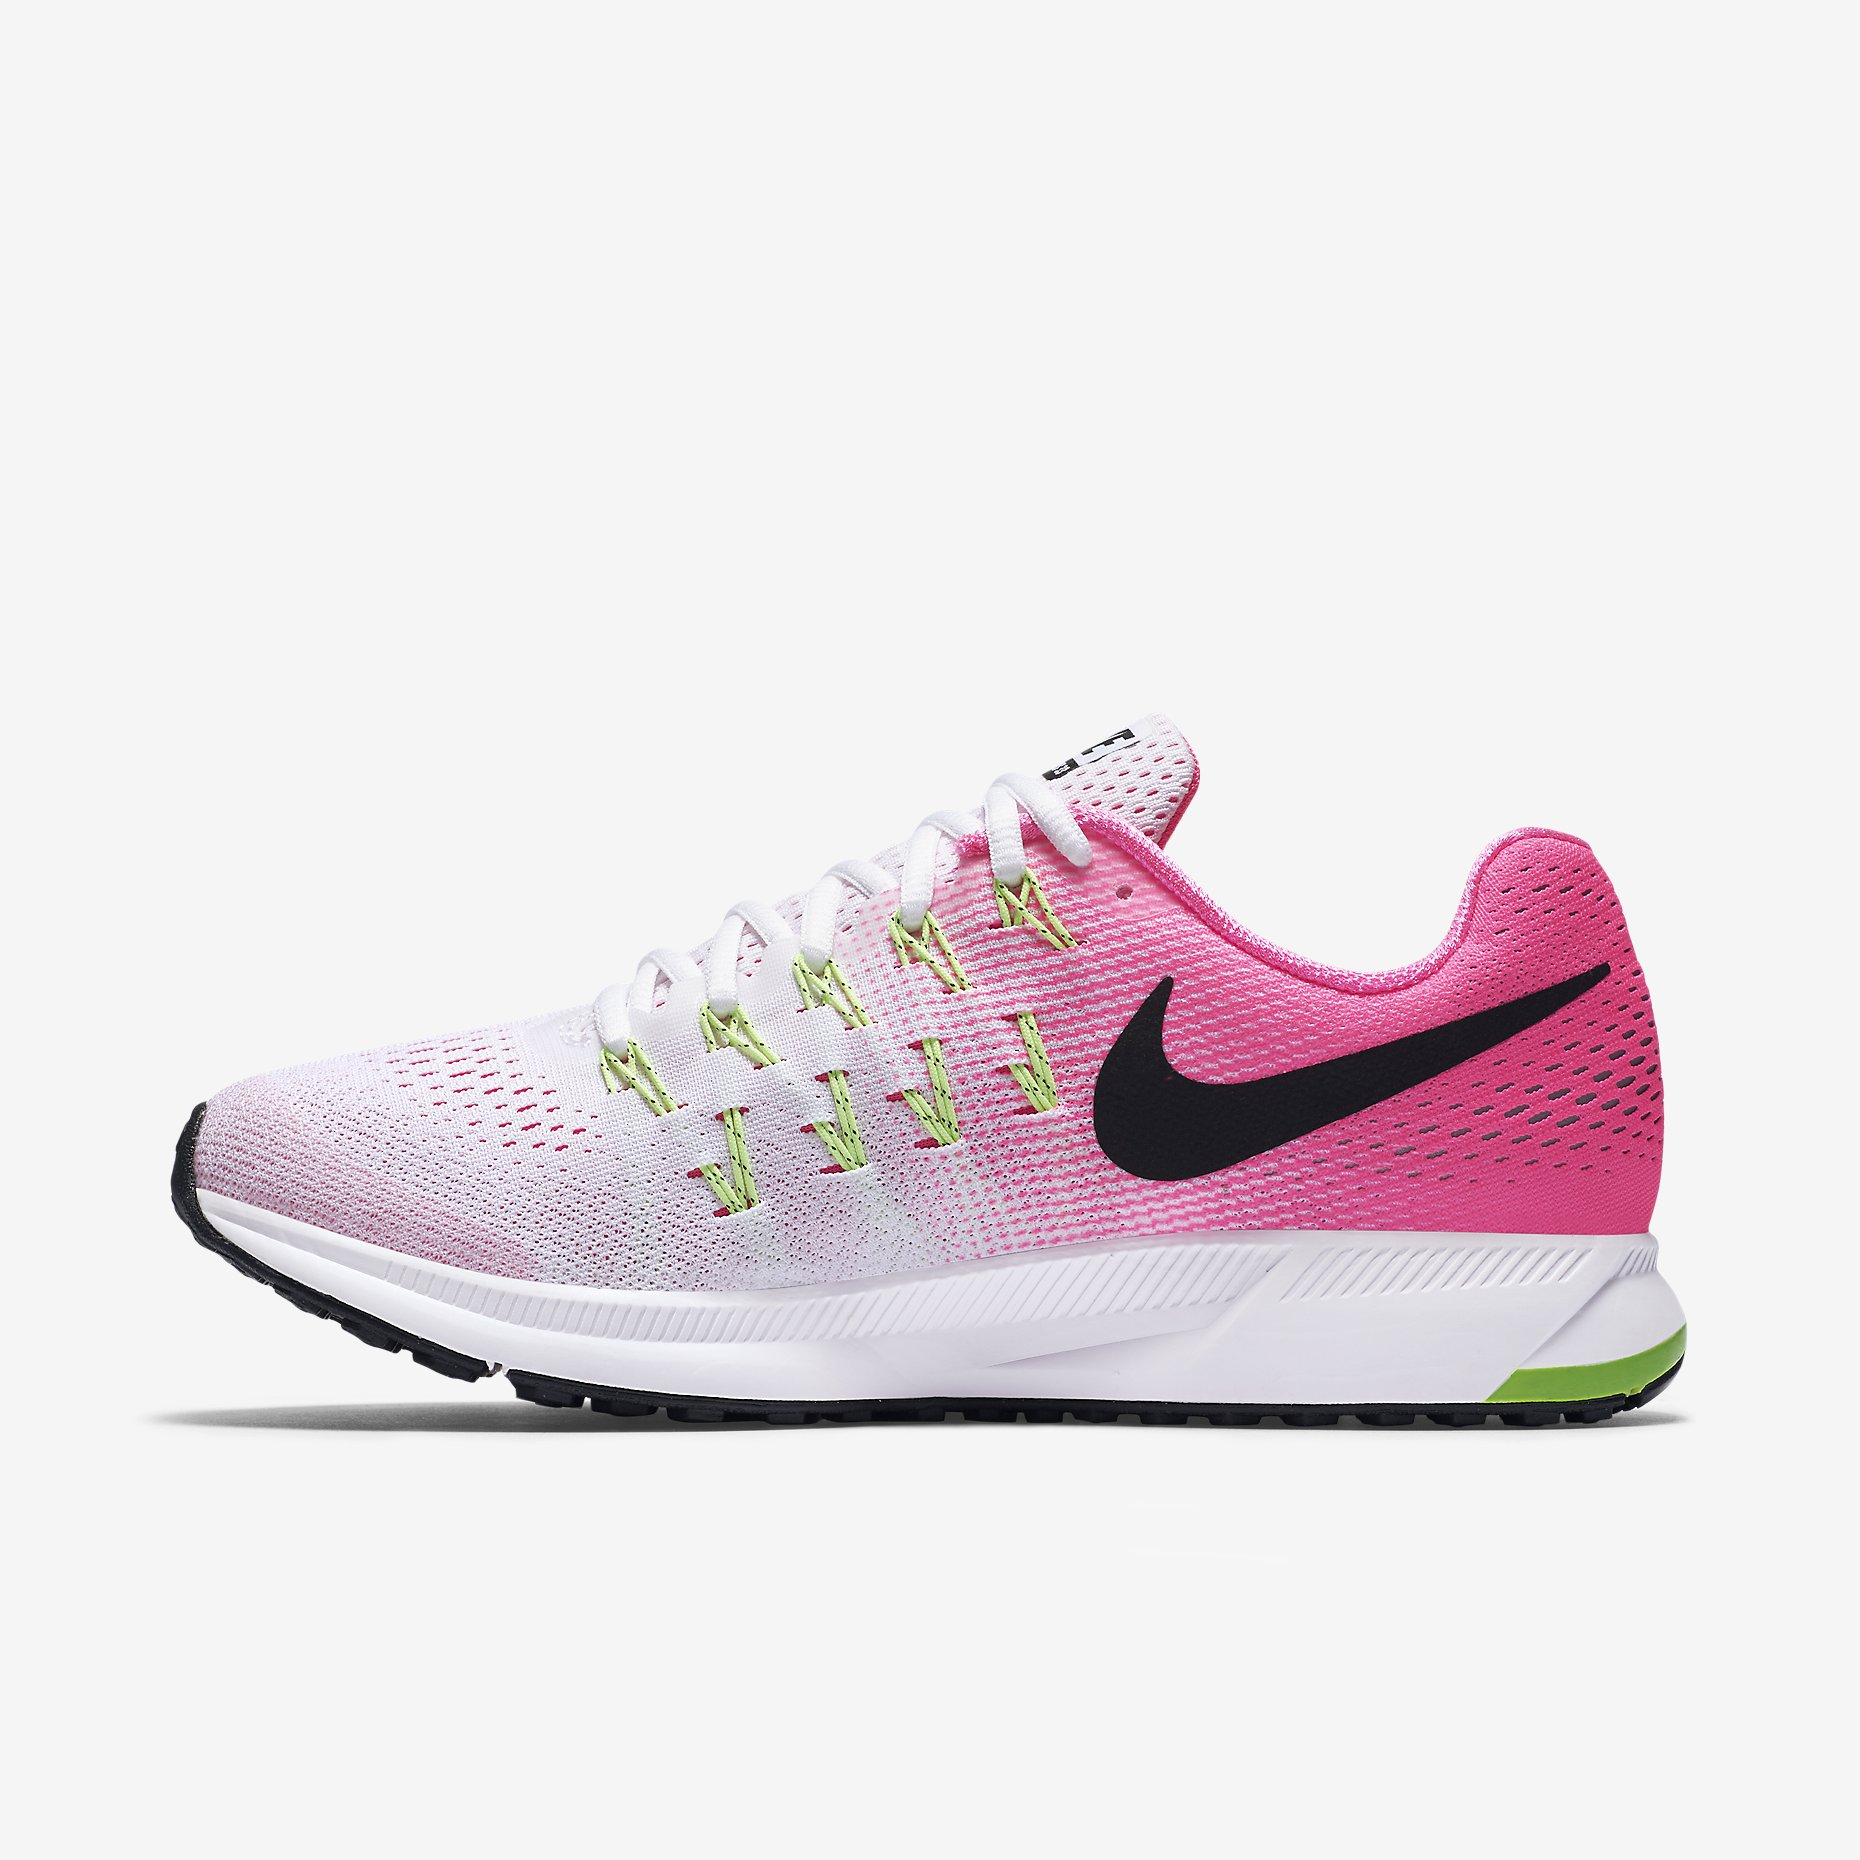 Are Nike Air Max Thea Good For Walking Musée des impressionnismes